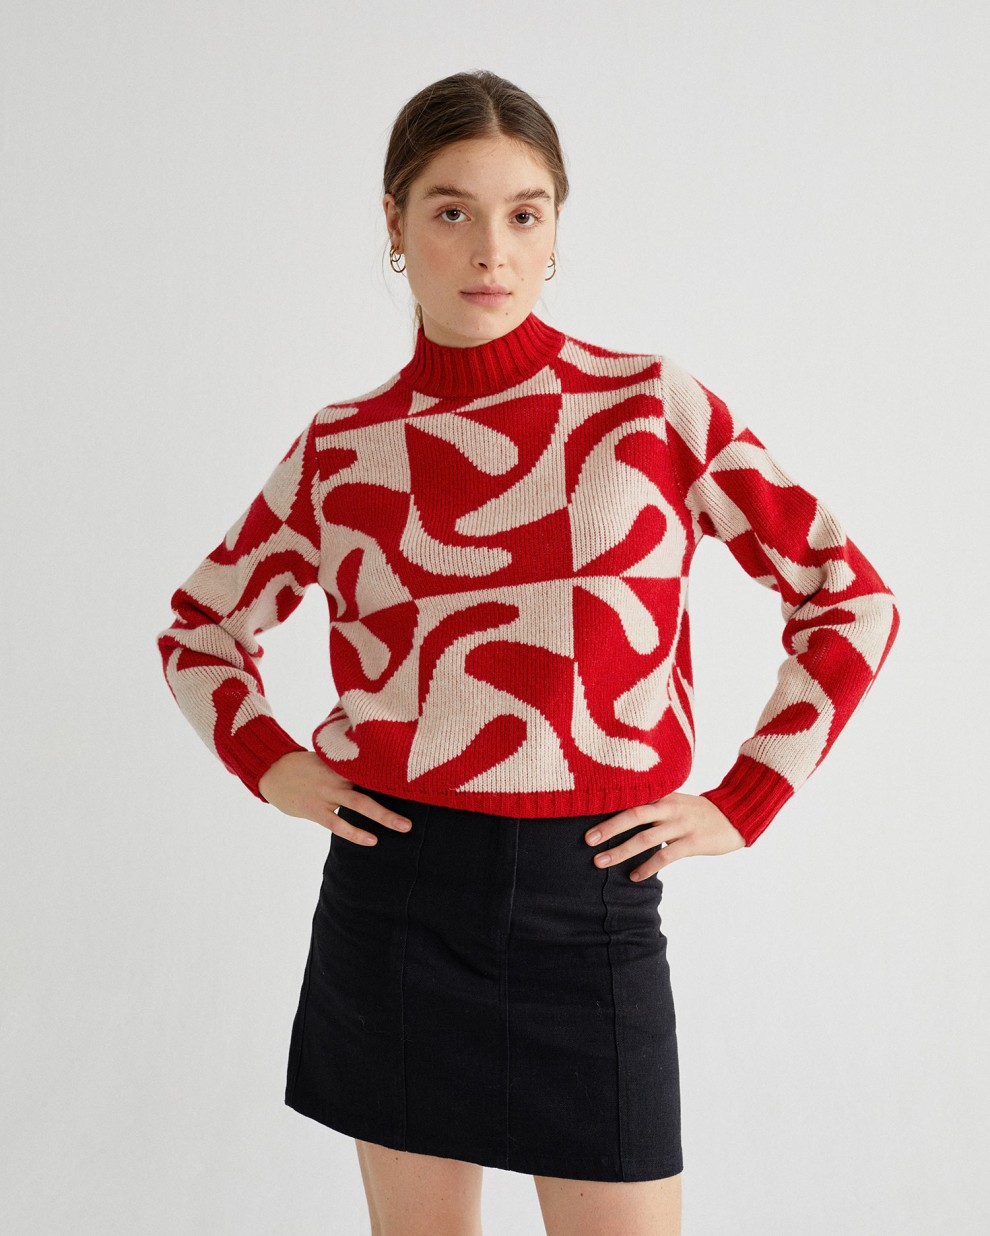 ZABAWA RED OPS SWEATER